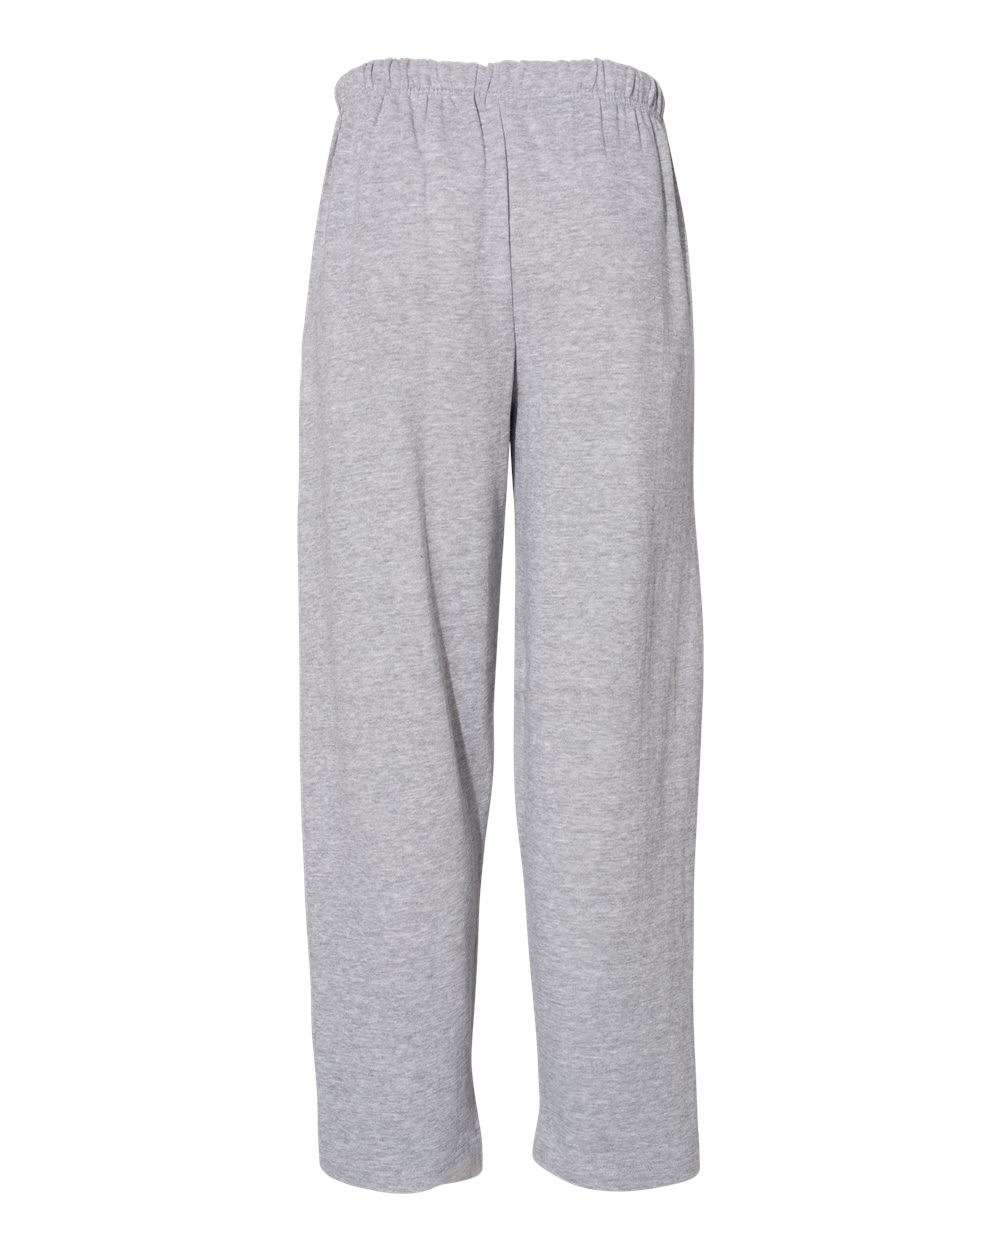 C2-Sport-Mens-Open-Bottom-Sweatpants-With-Pockets-5577-up-to-4XL thumbnail 16